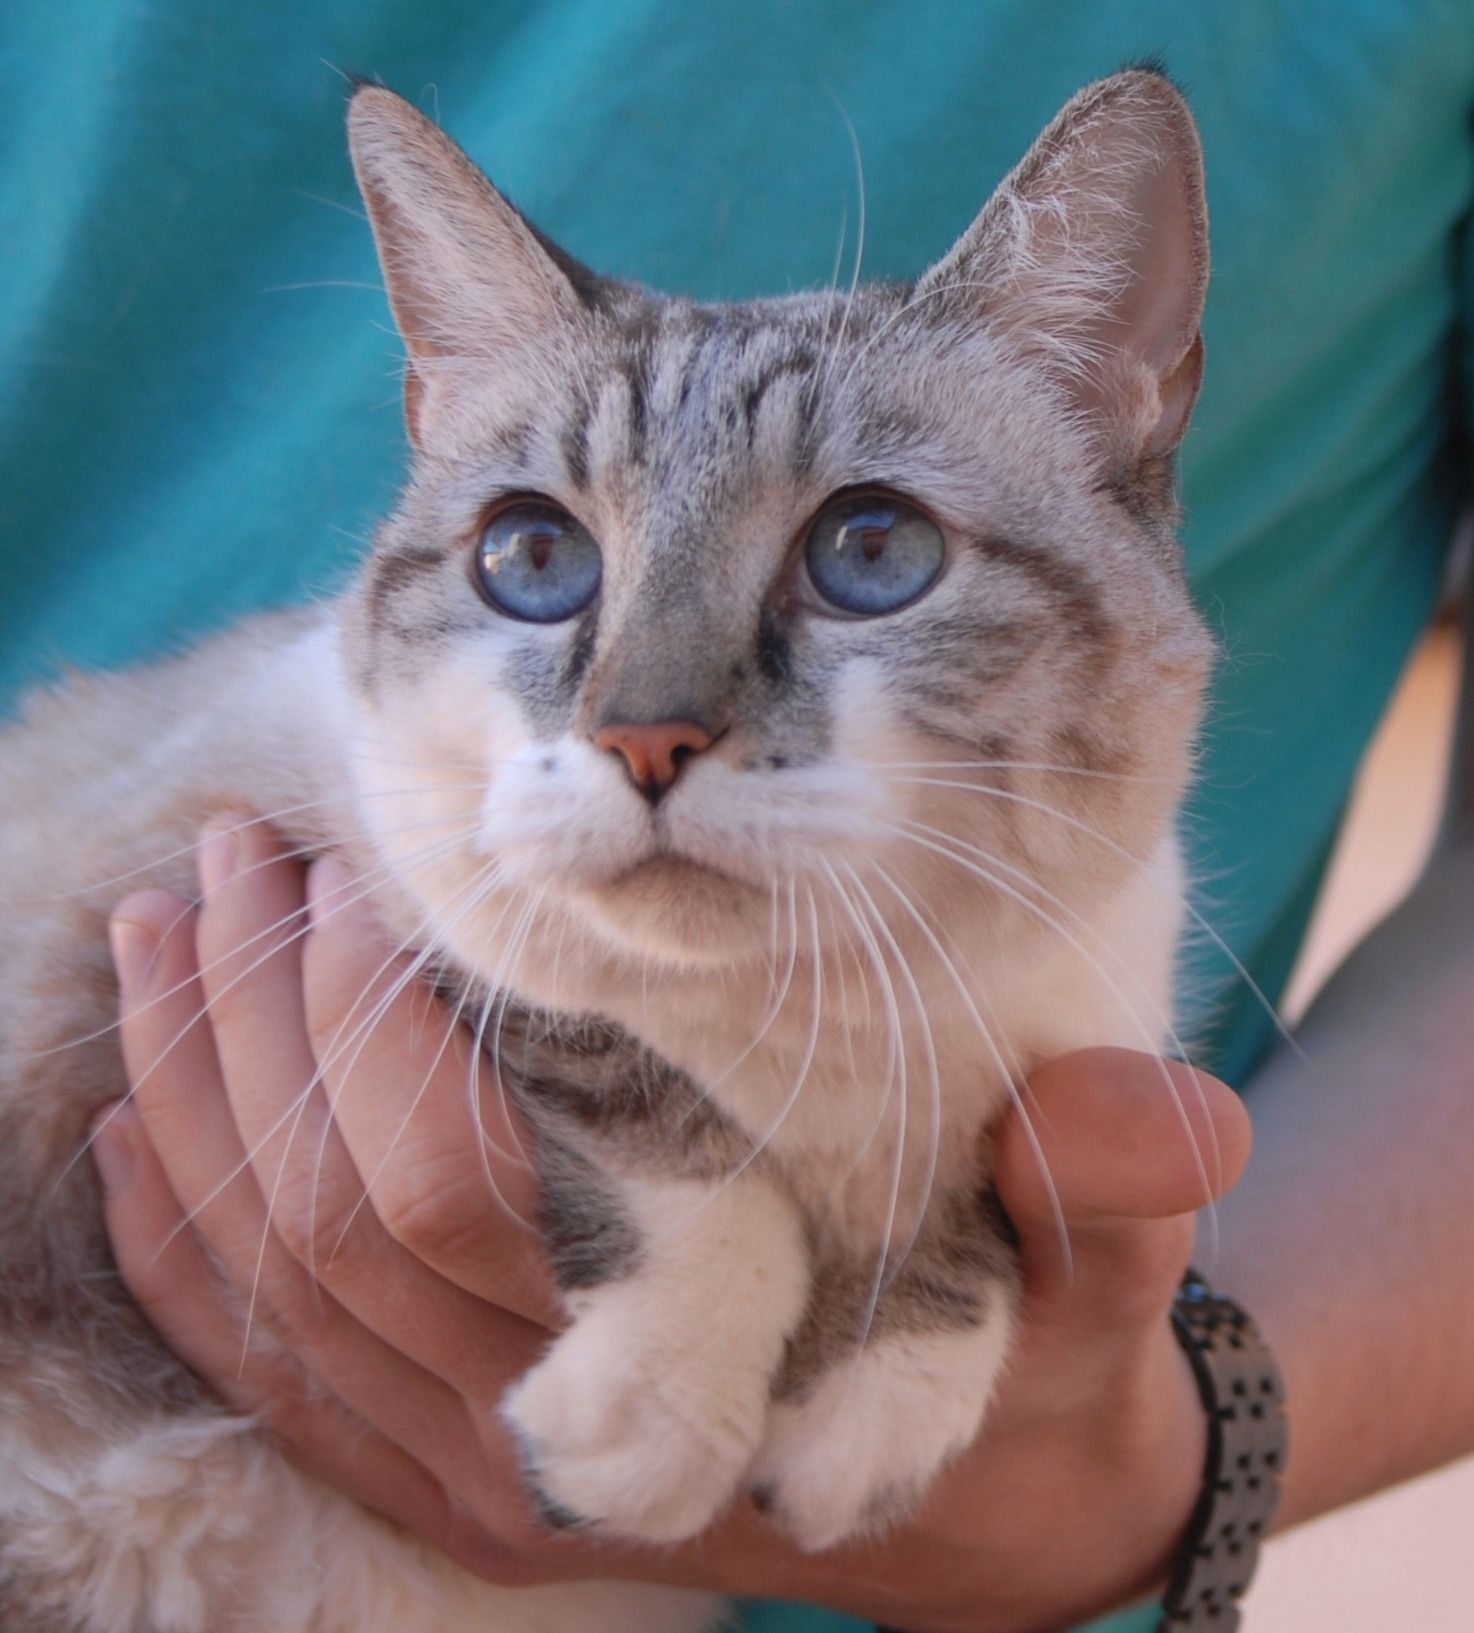 Shawna is a sweetheart, a Lynx Point Siamese mix